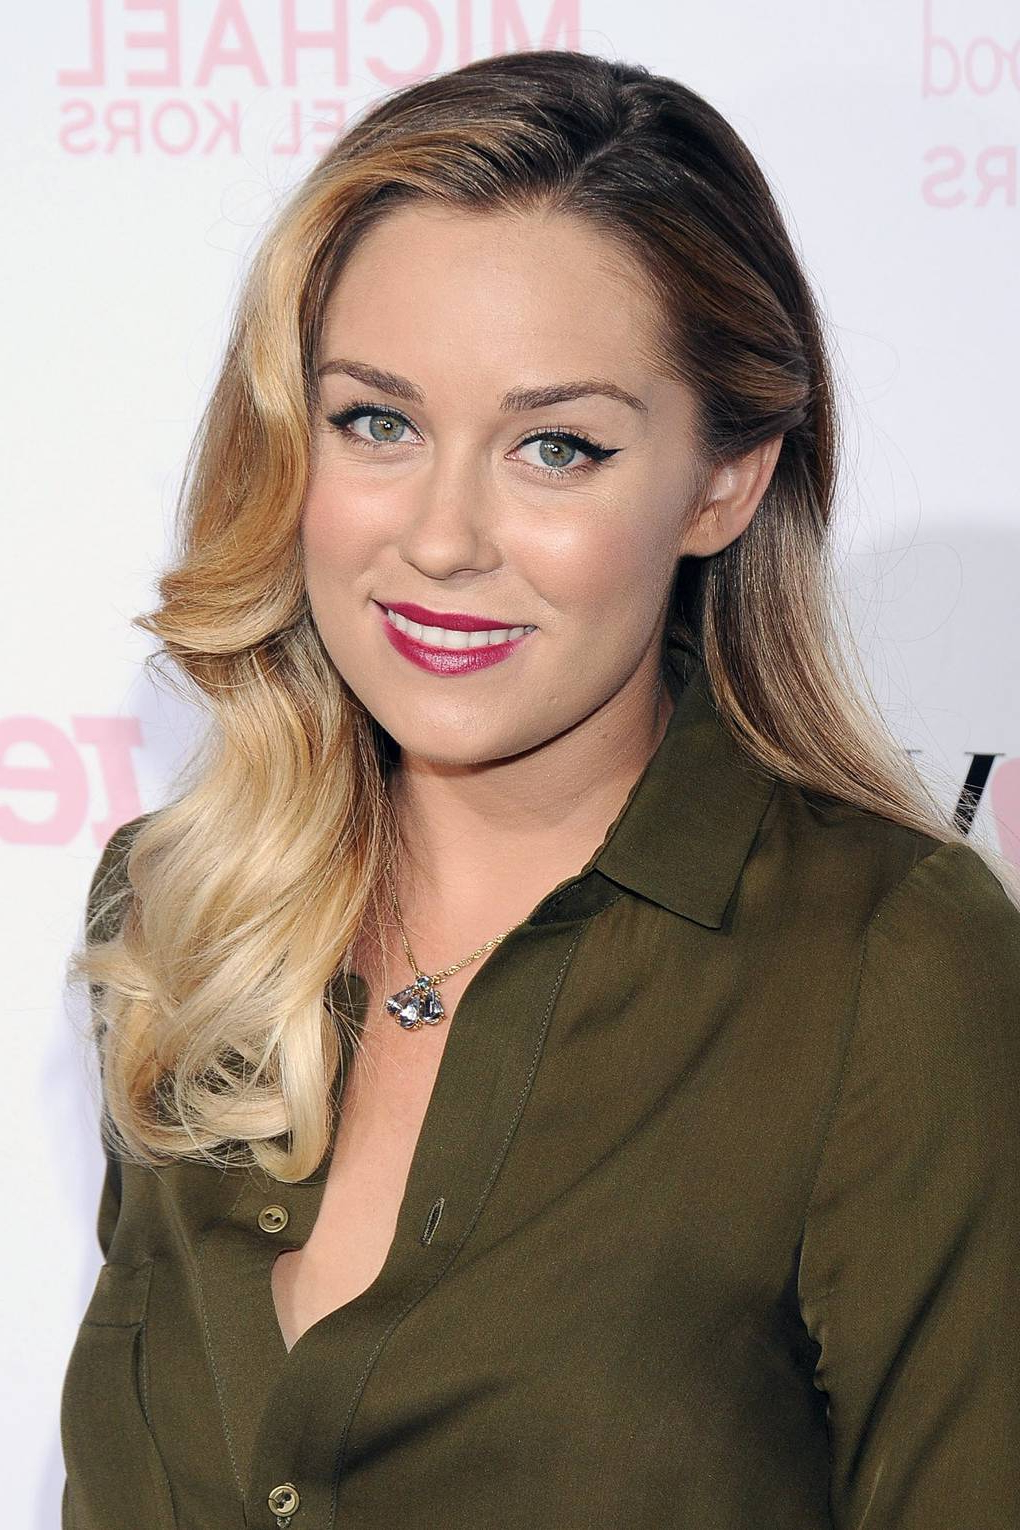 Lauren Conrad Best Haircuts & Hairstyles | Glamour Uk Pertaining To Lauren Conrad Short Hairstyles (View 4 of 25)